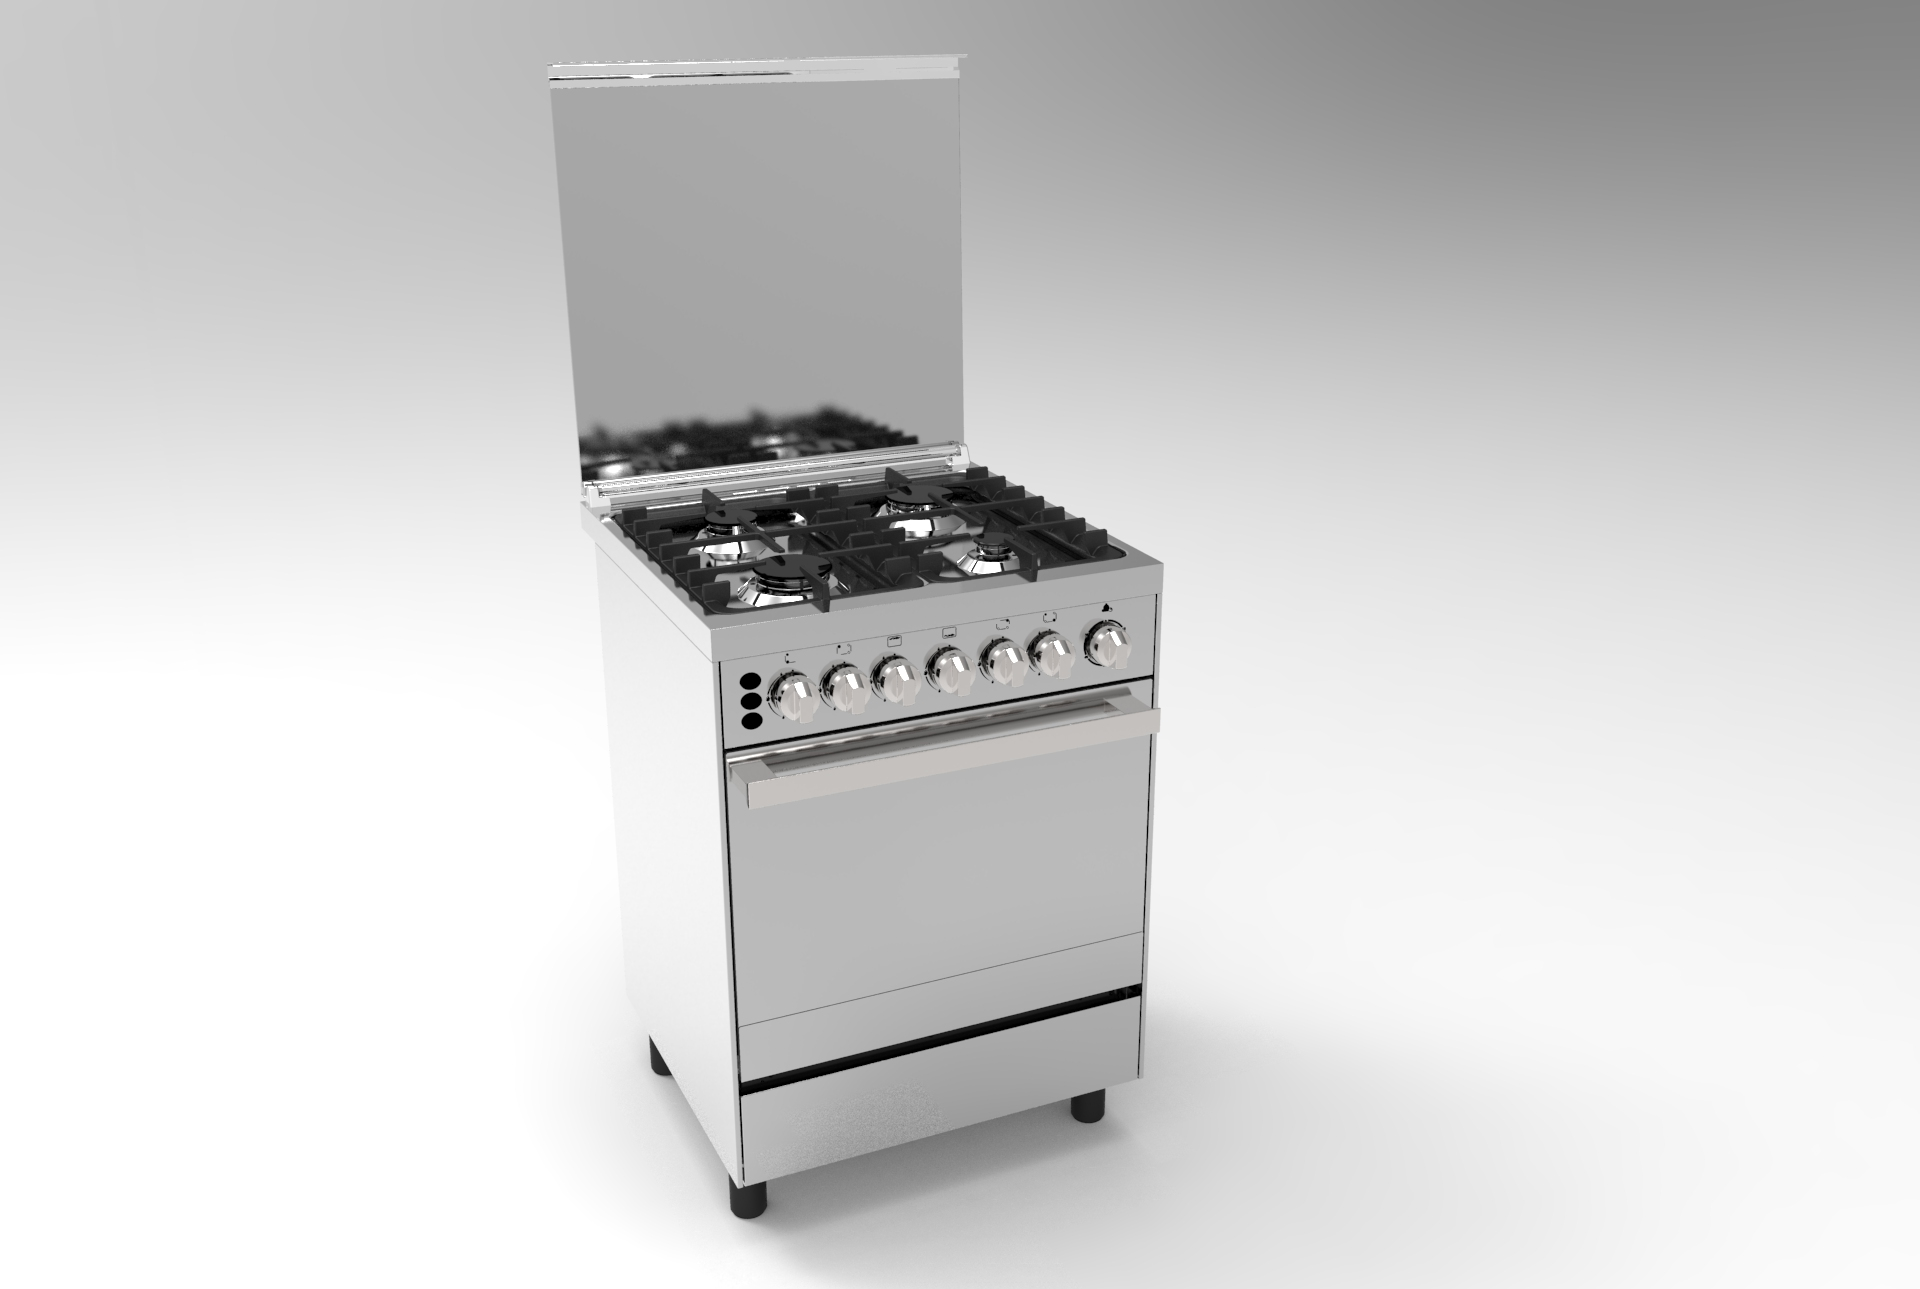 special control 90*60 electric cooking stove for South Africa chef